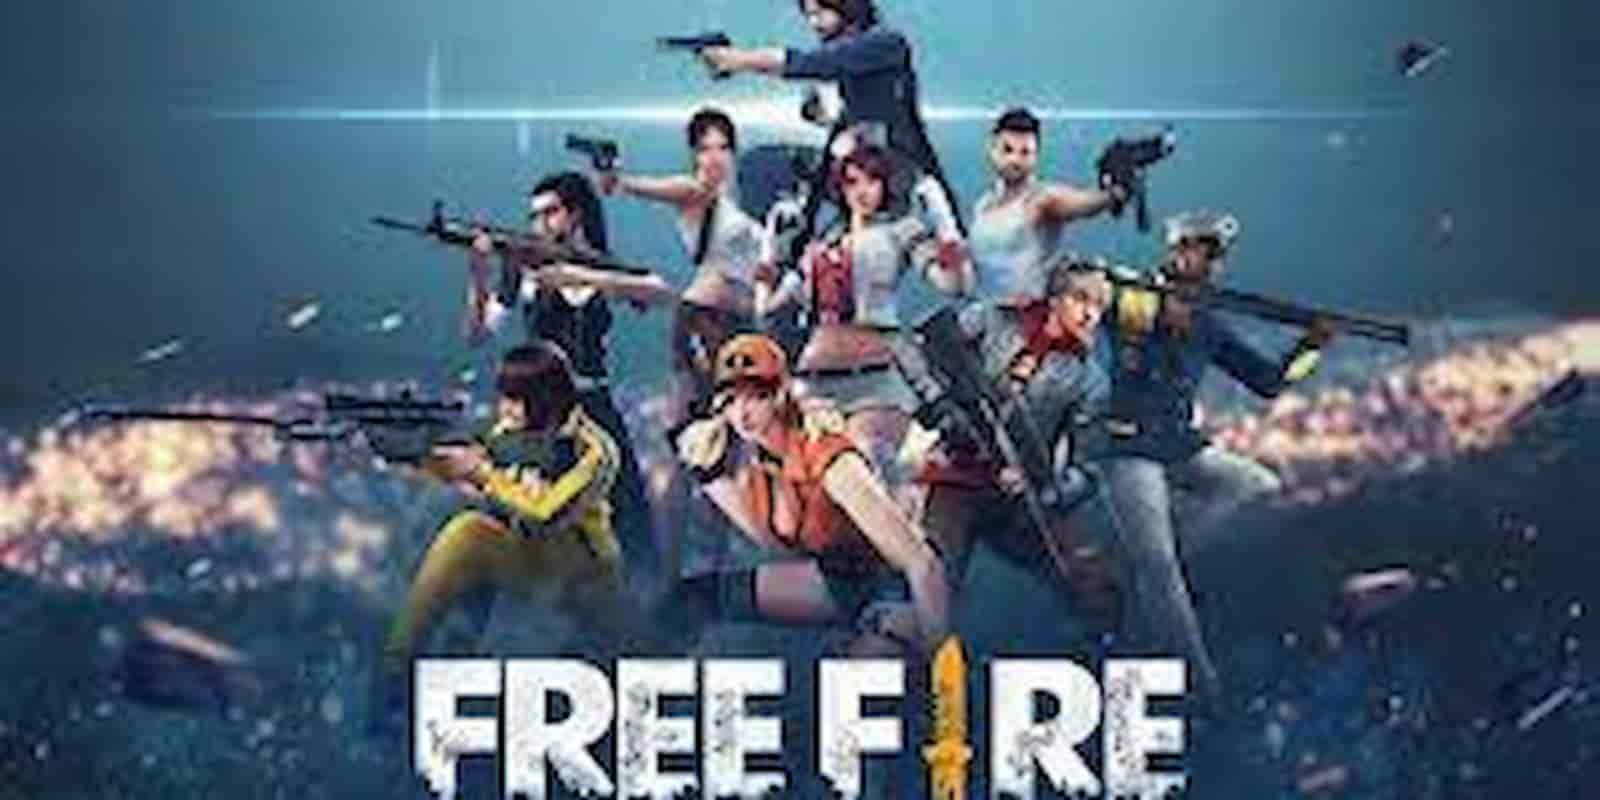 Top 5 Battle Royale Games Like PUBG Mobile: Free Fire